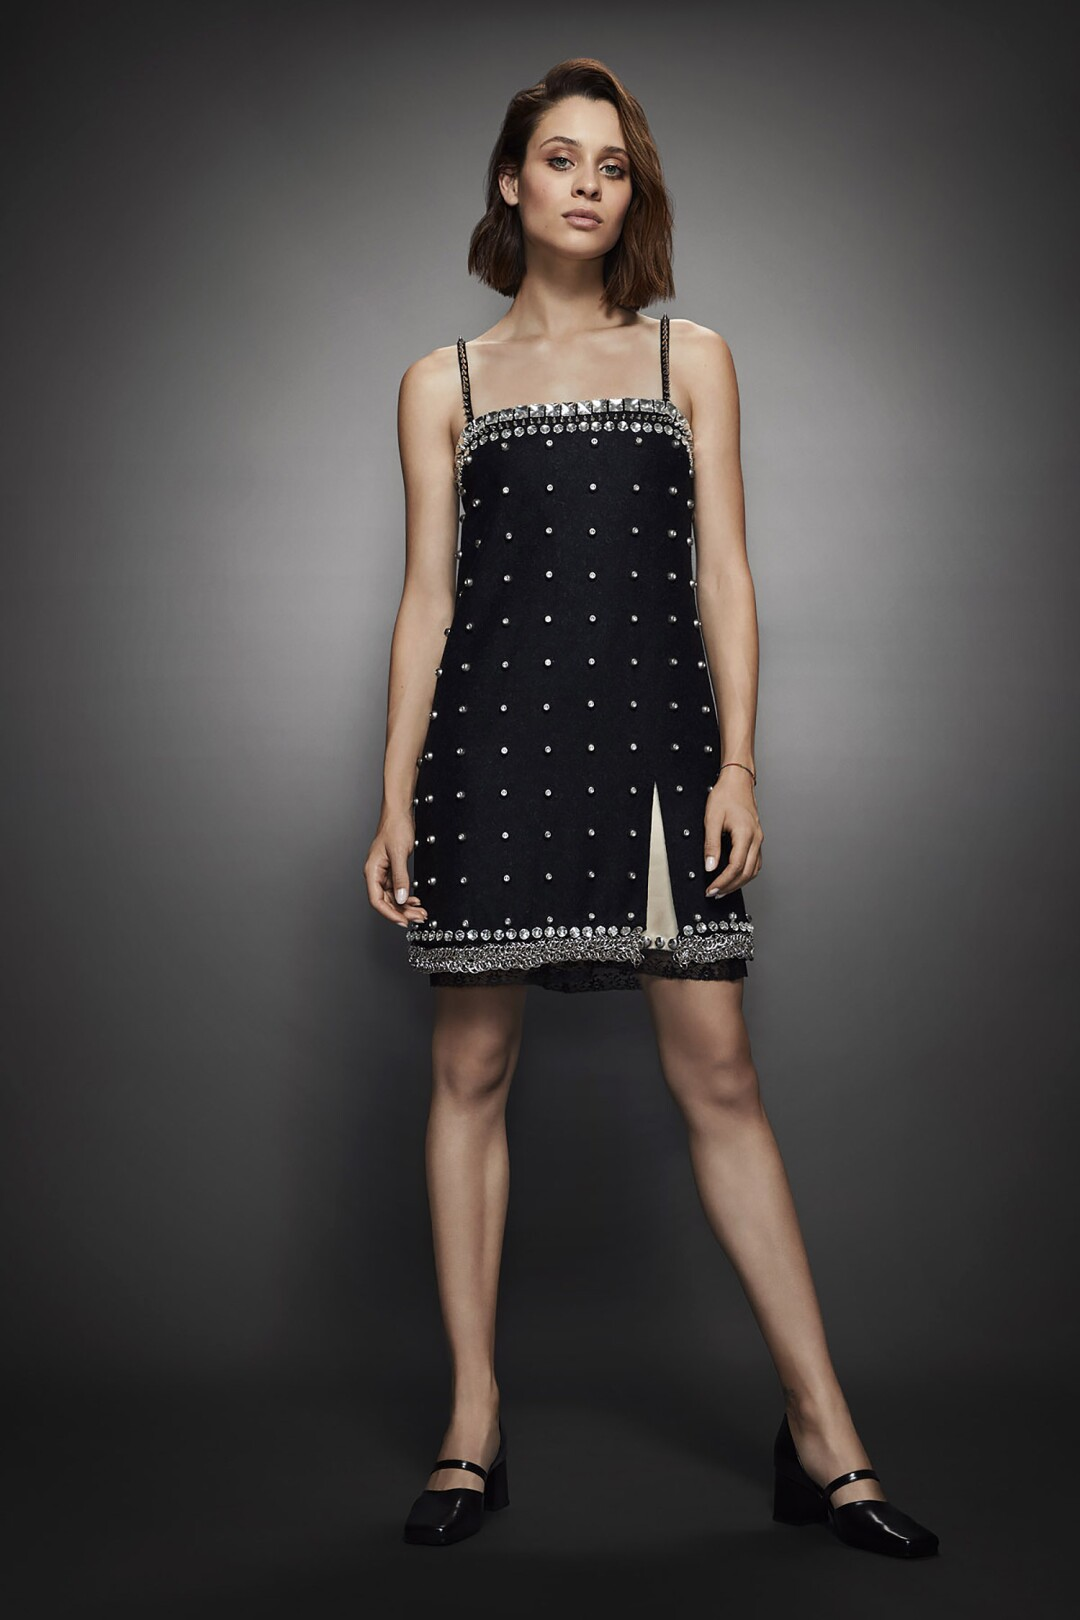 A portrait of a woman in a black dress with white dots on it